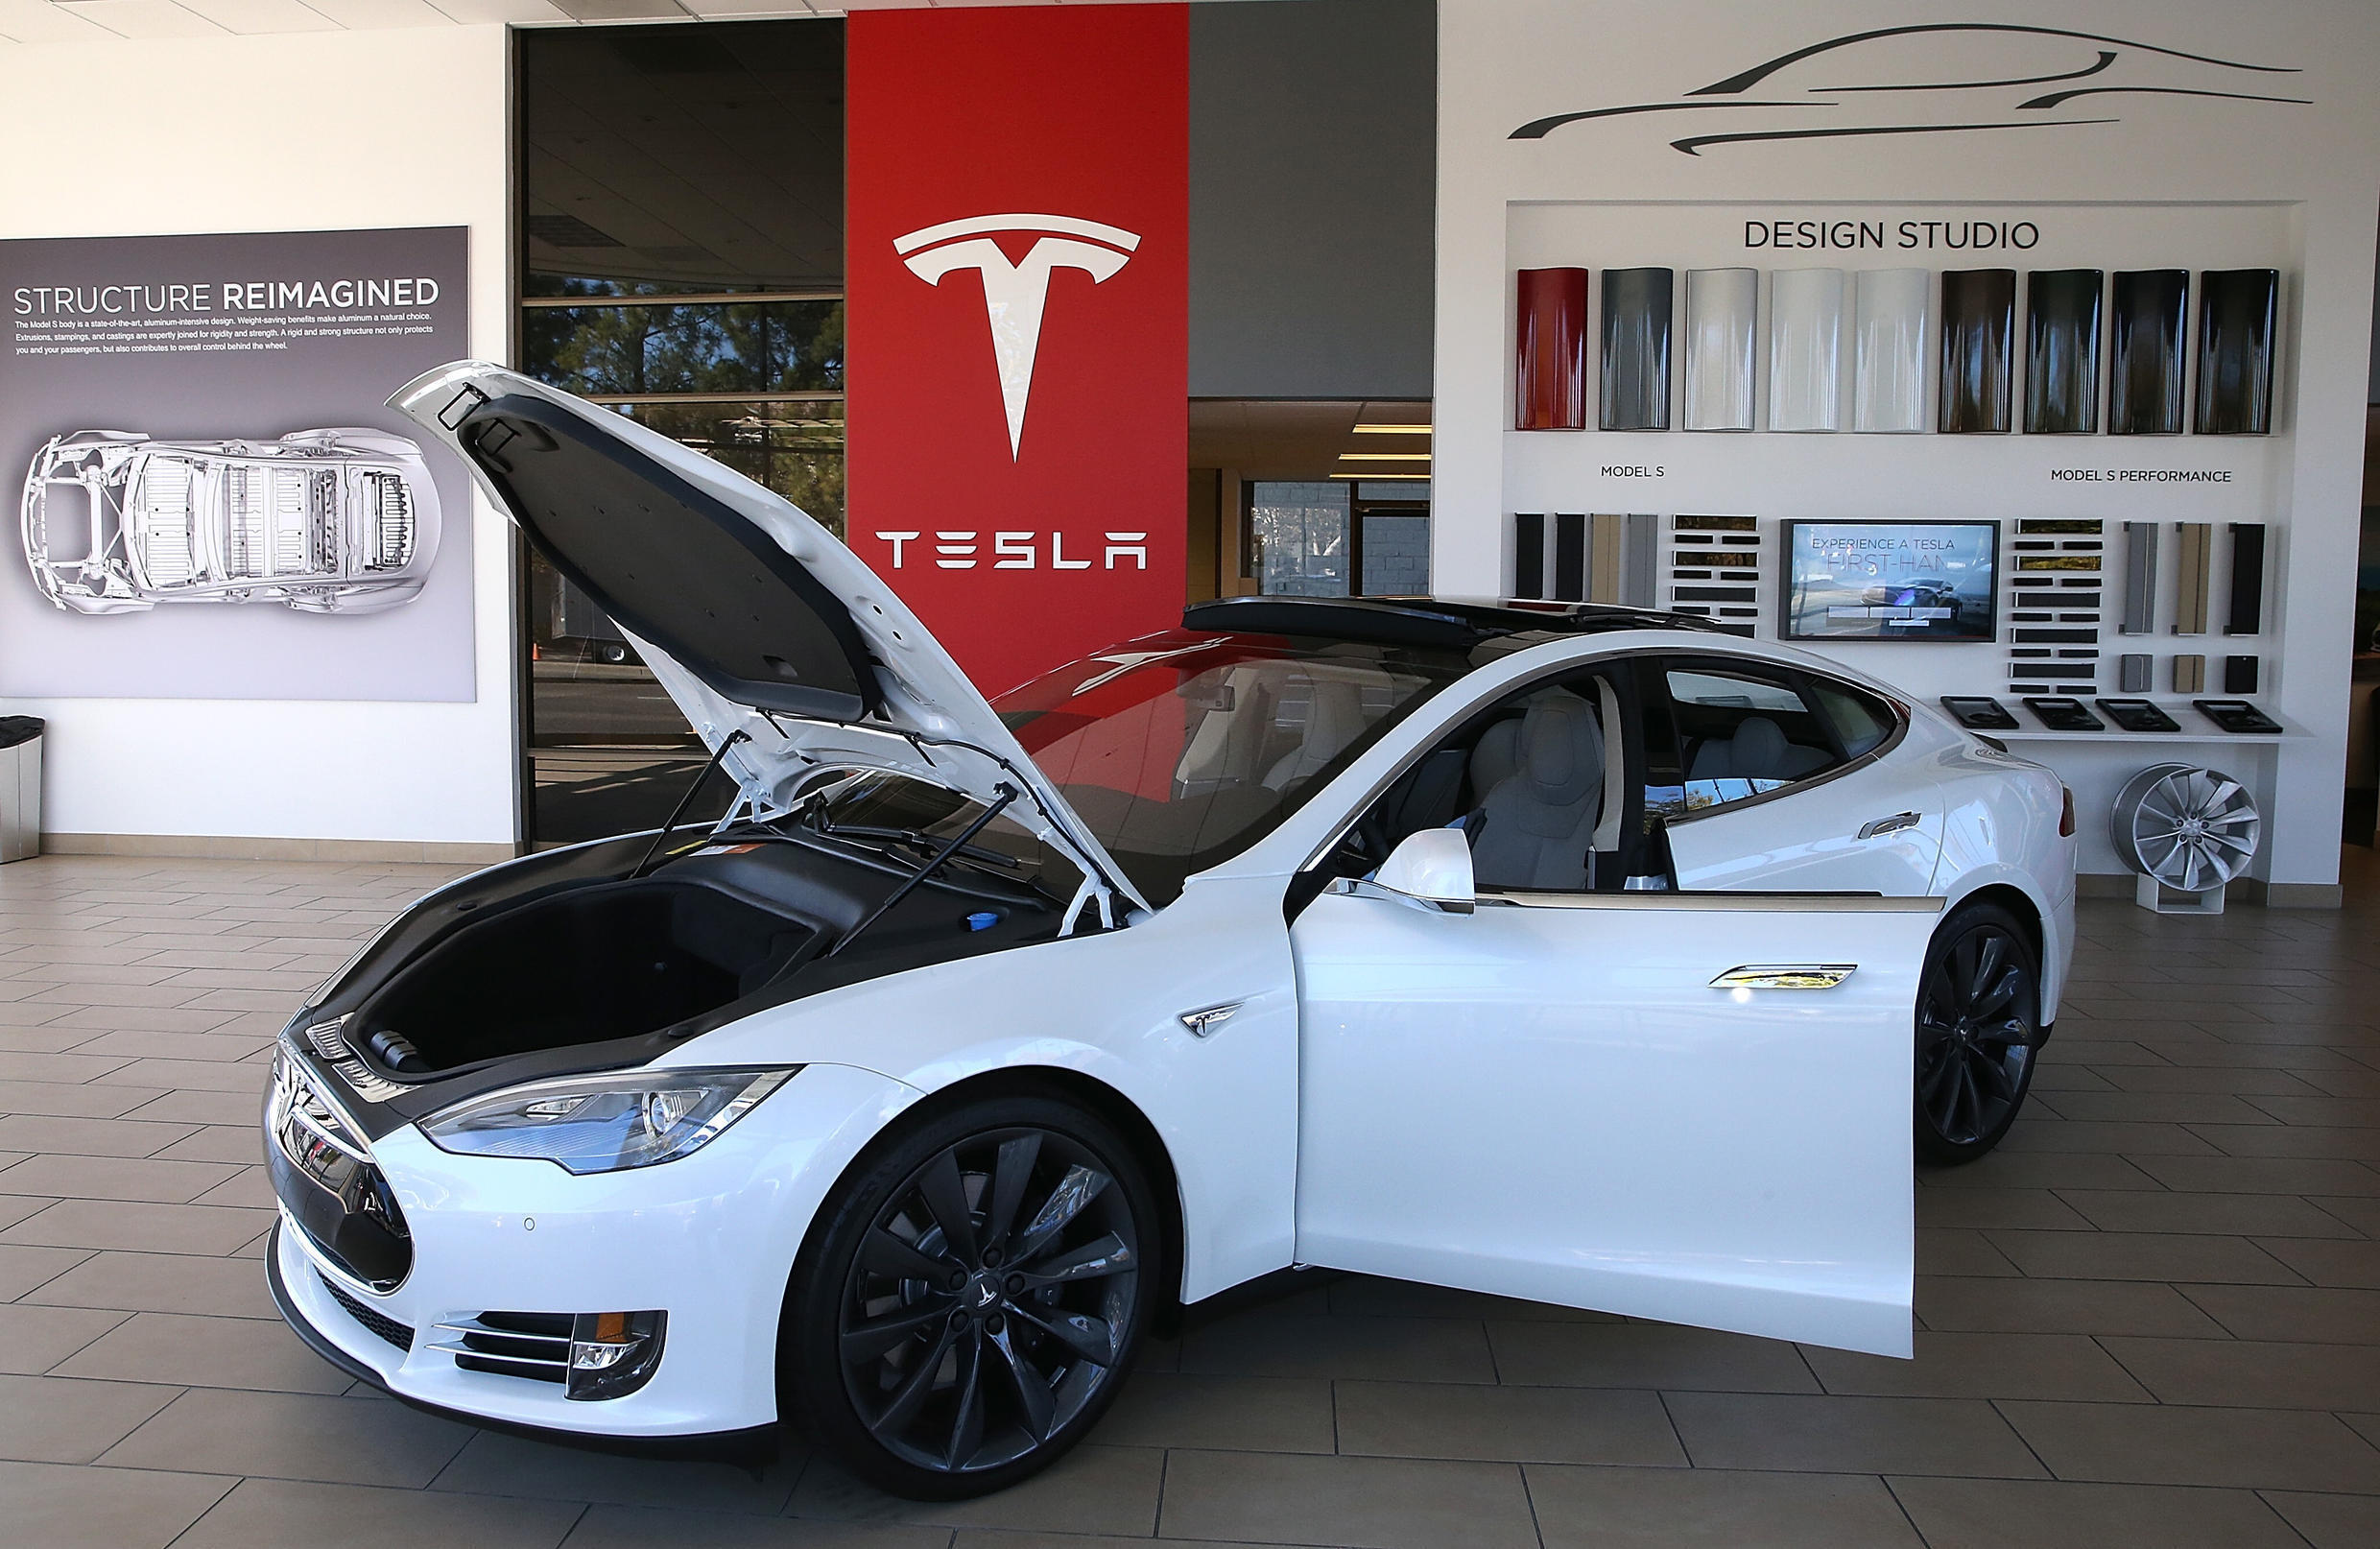 Tesla plans a massive recall of Model S sedans and Model X SUVs to fix a computer memory issue that could cause the backup camera and other saftey features to fail